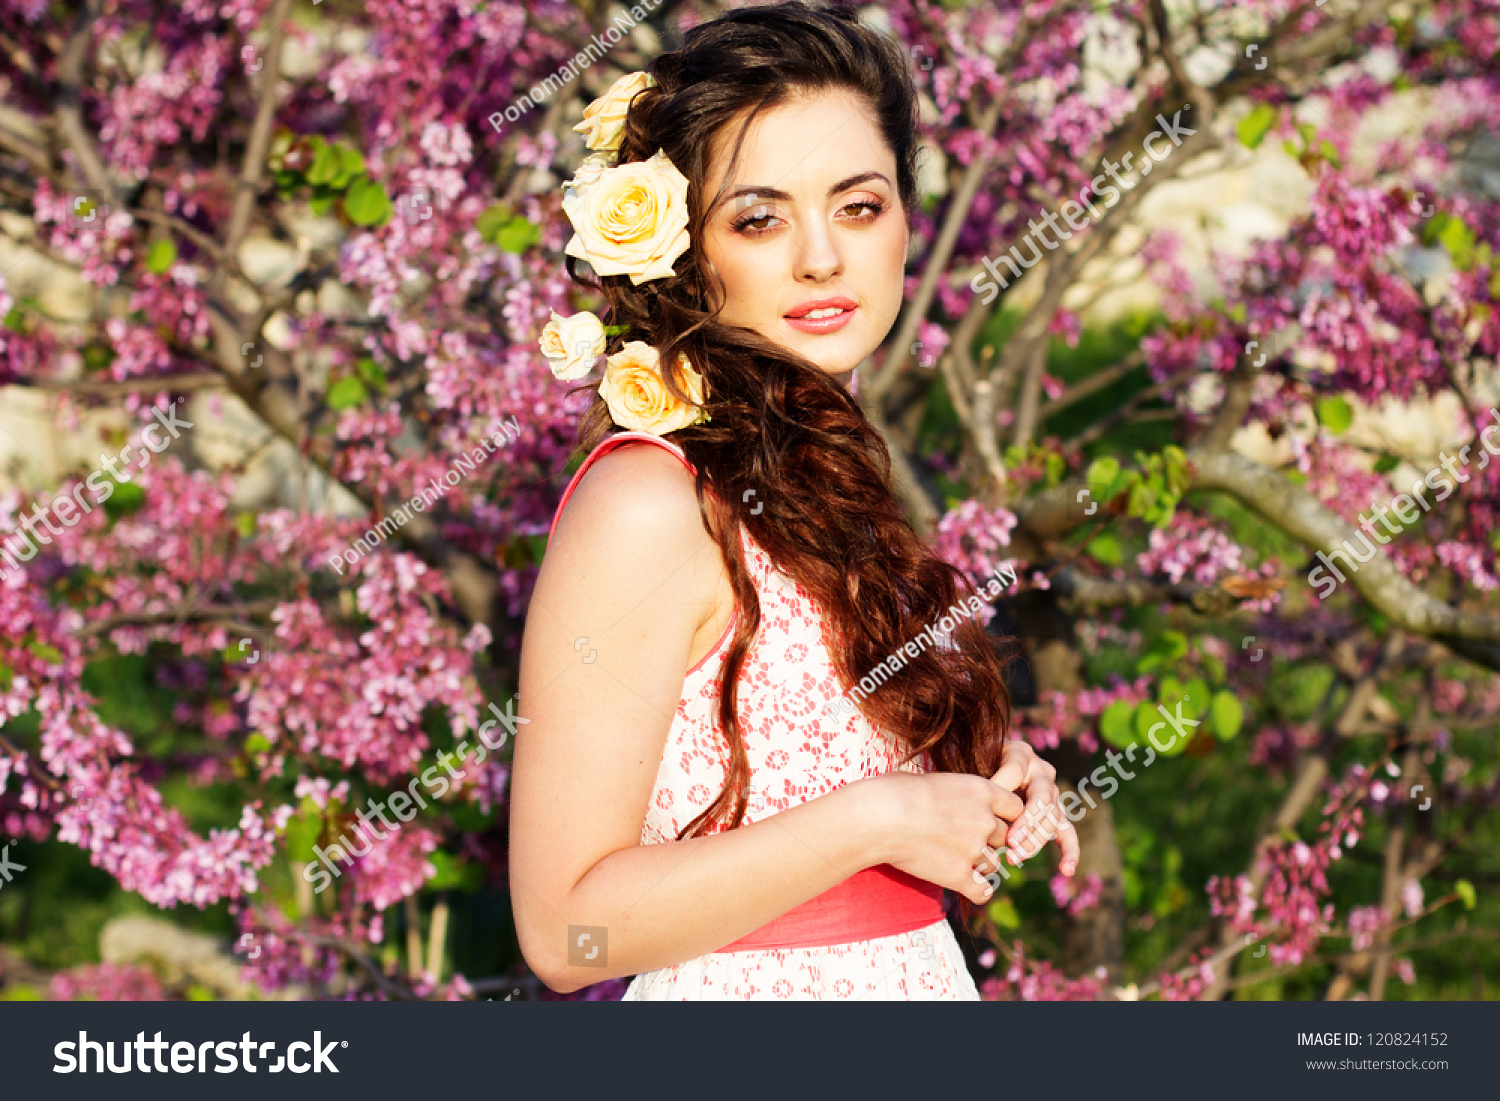 Beautiful woman flowers her hair stock photo 120824152 shutterstock beautiful woman with flowers in her hair izmirmasajfo Image collections